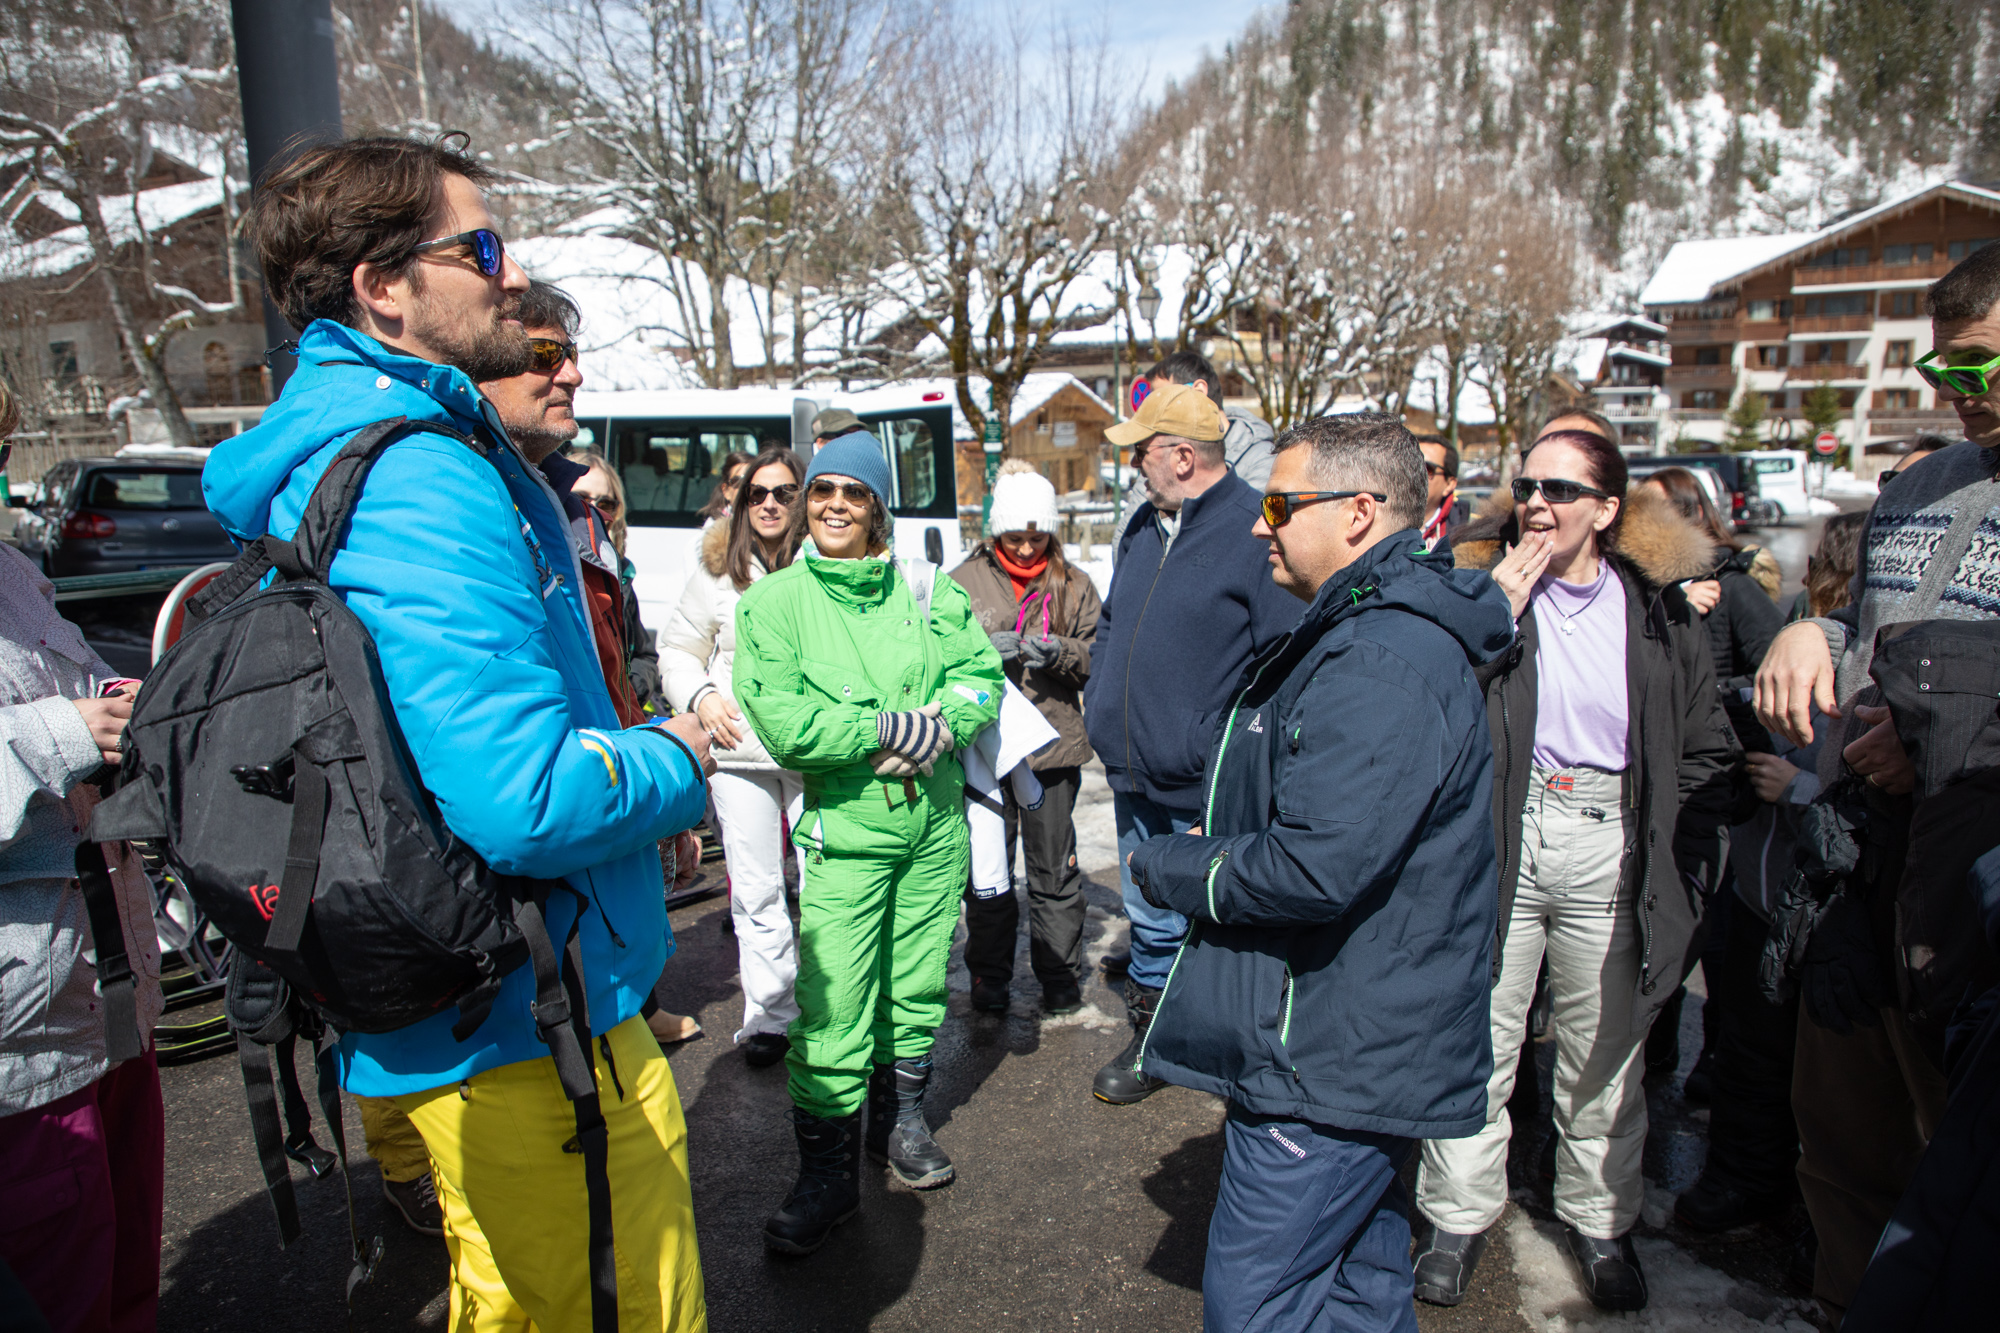 Break_The_Ice_LaClusaz_2019_web-6589.jpg